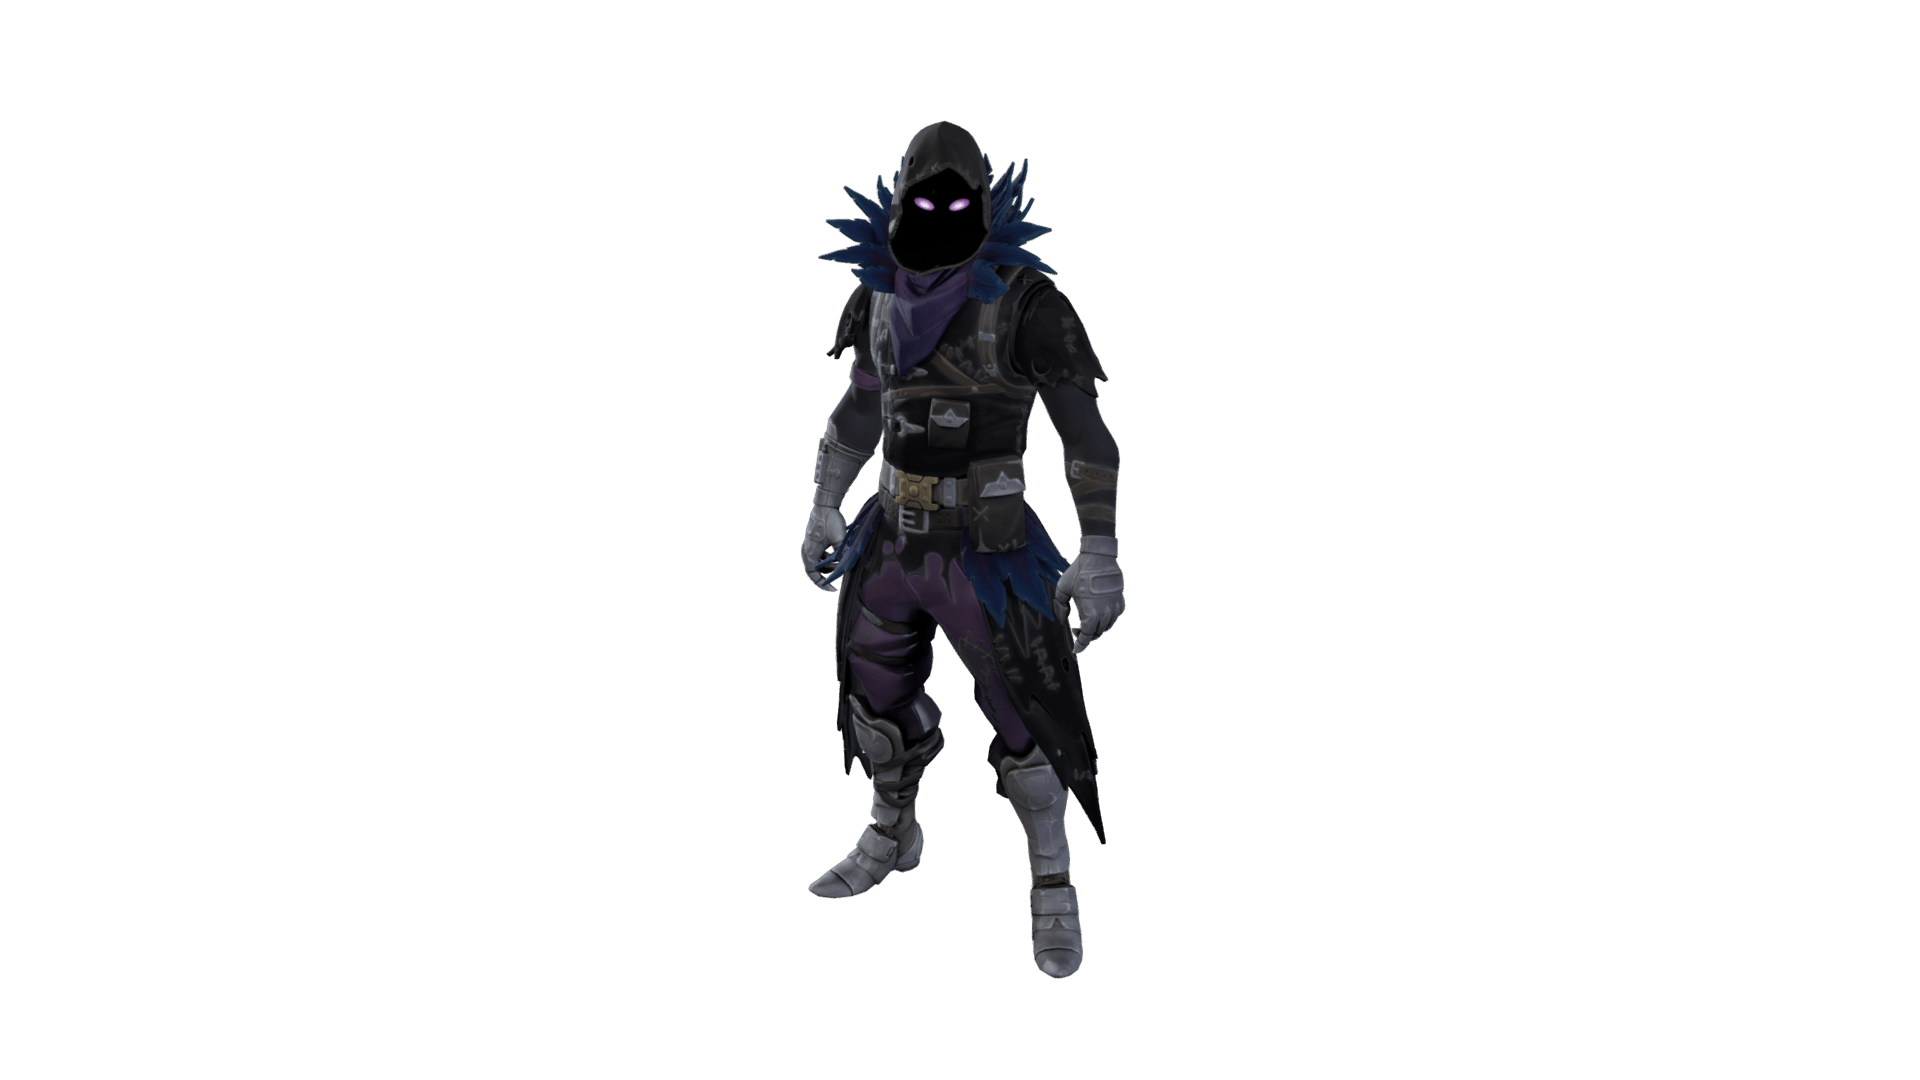 raven fortnite skin outfit info how get date #27084